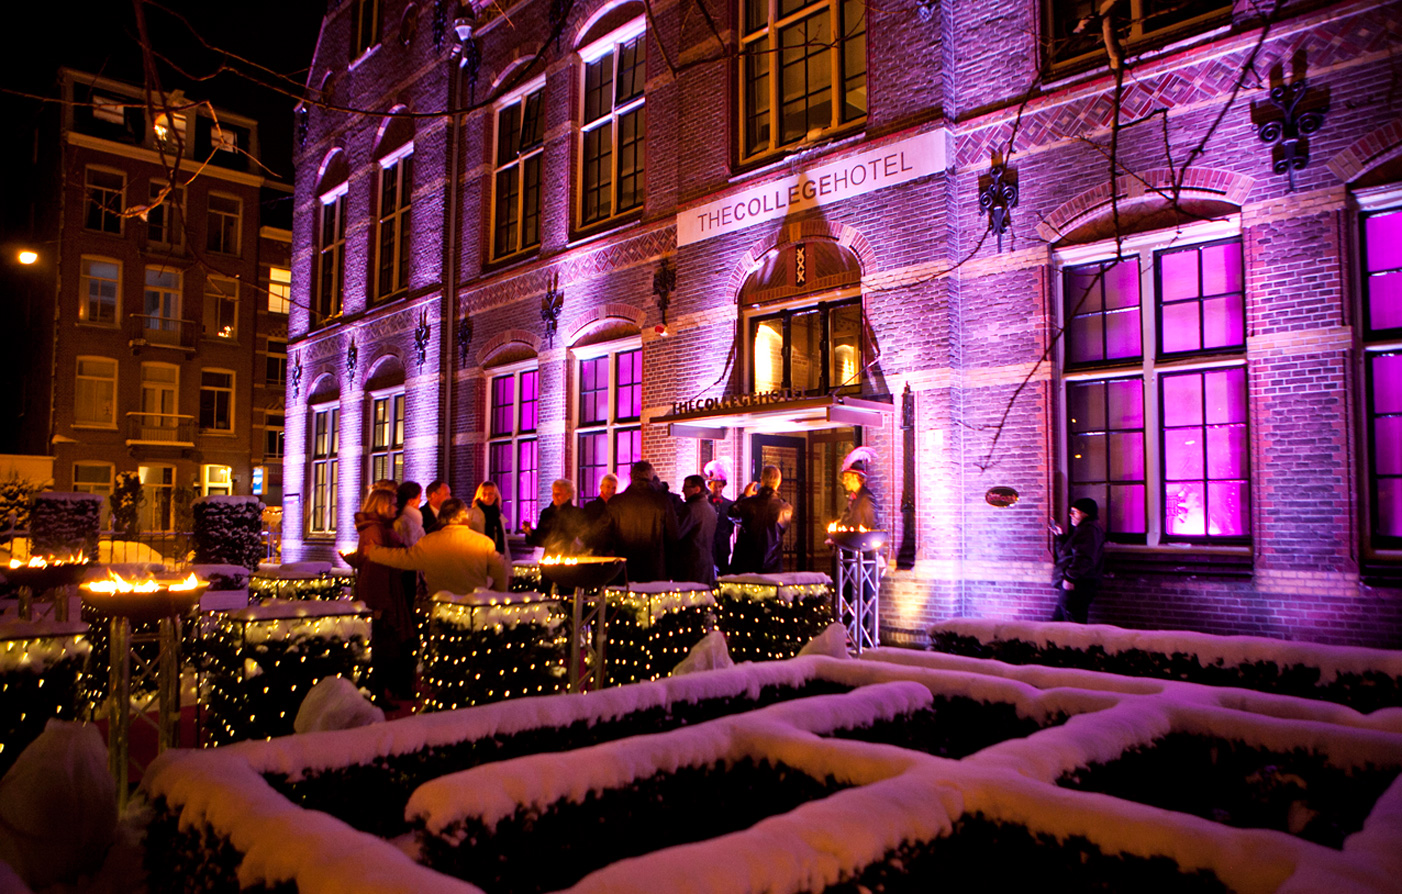 Luxury Hotels In Amsterdam Netherlands The College Hotel